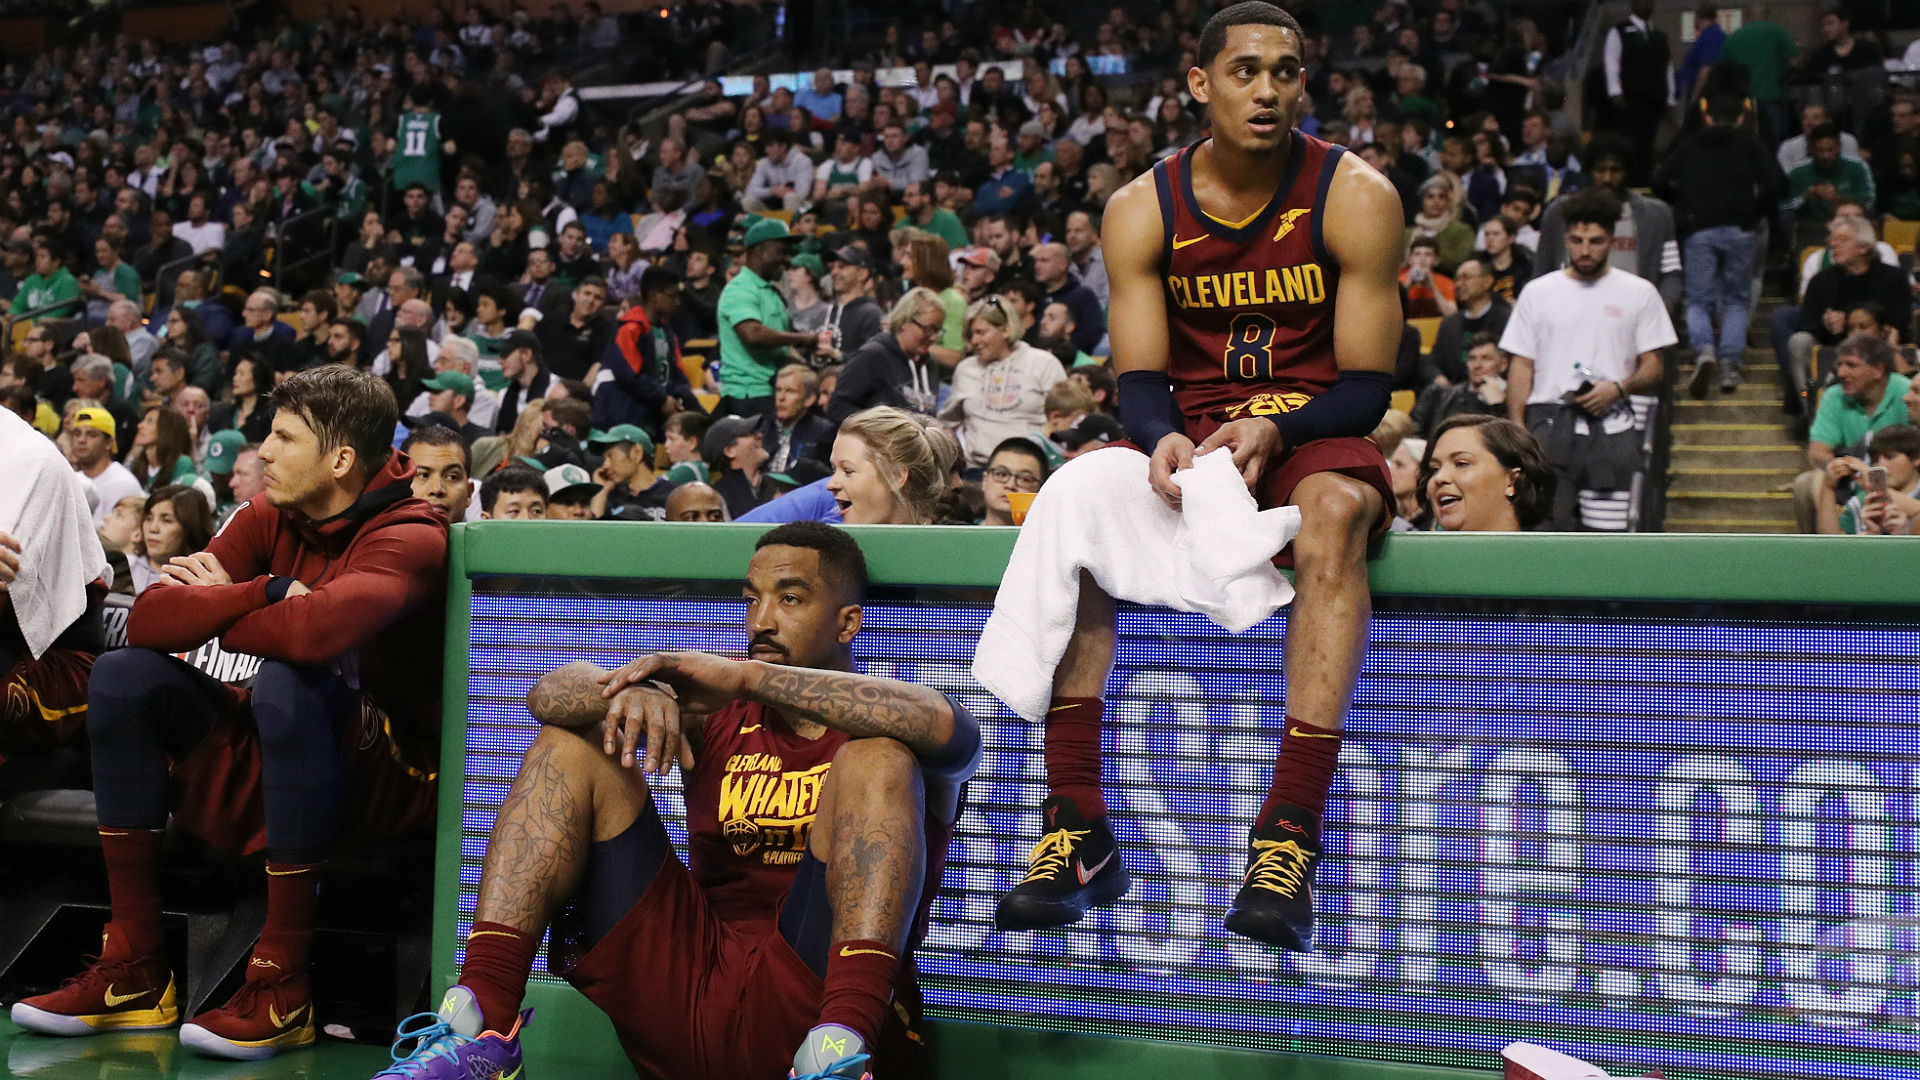 Paul Pierce says he thinks Duke could beat the Cavaliers